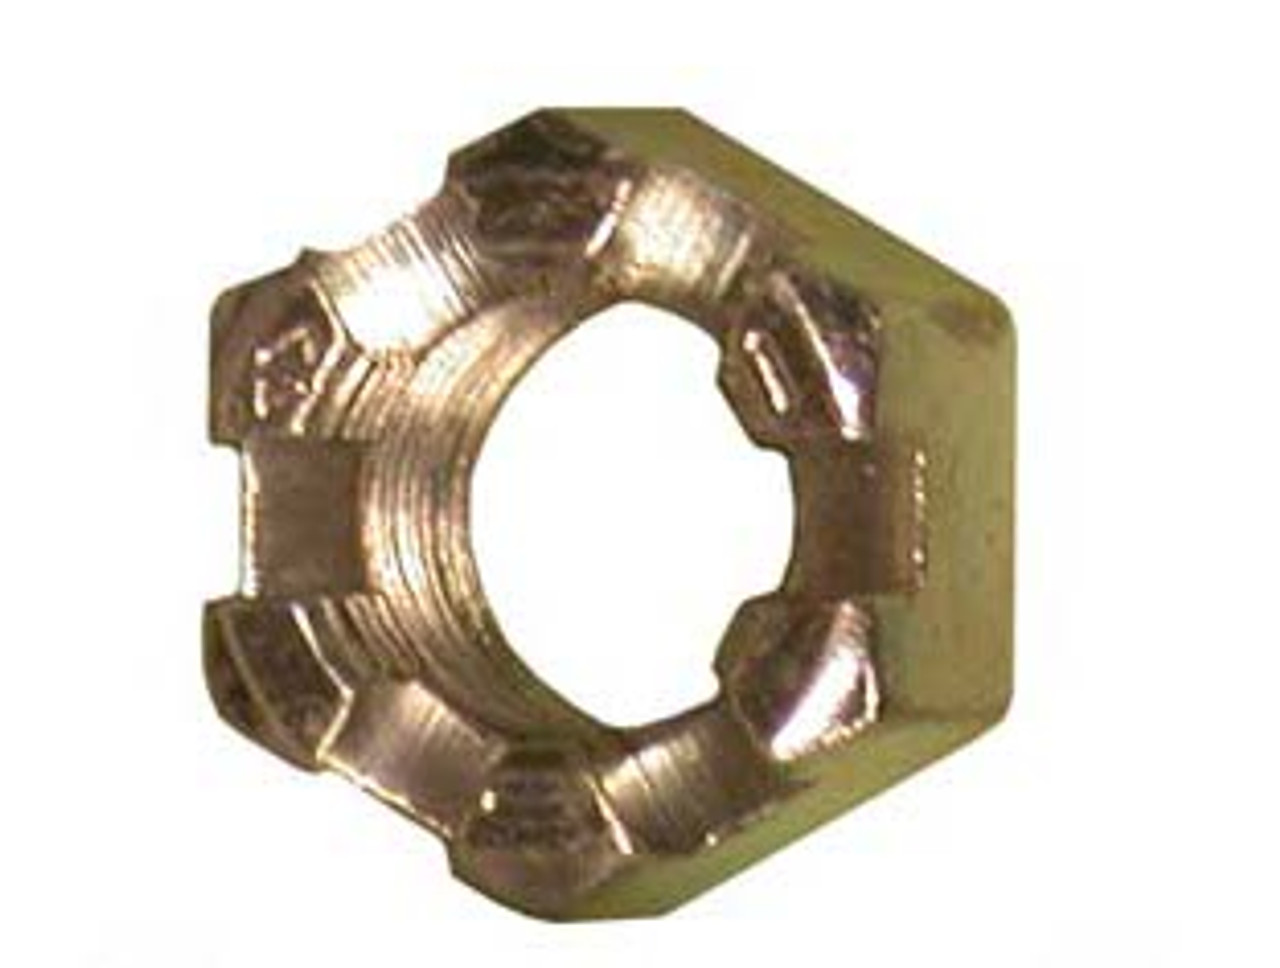 HSN58 --- Model 20 Slotted Hex Nut